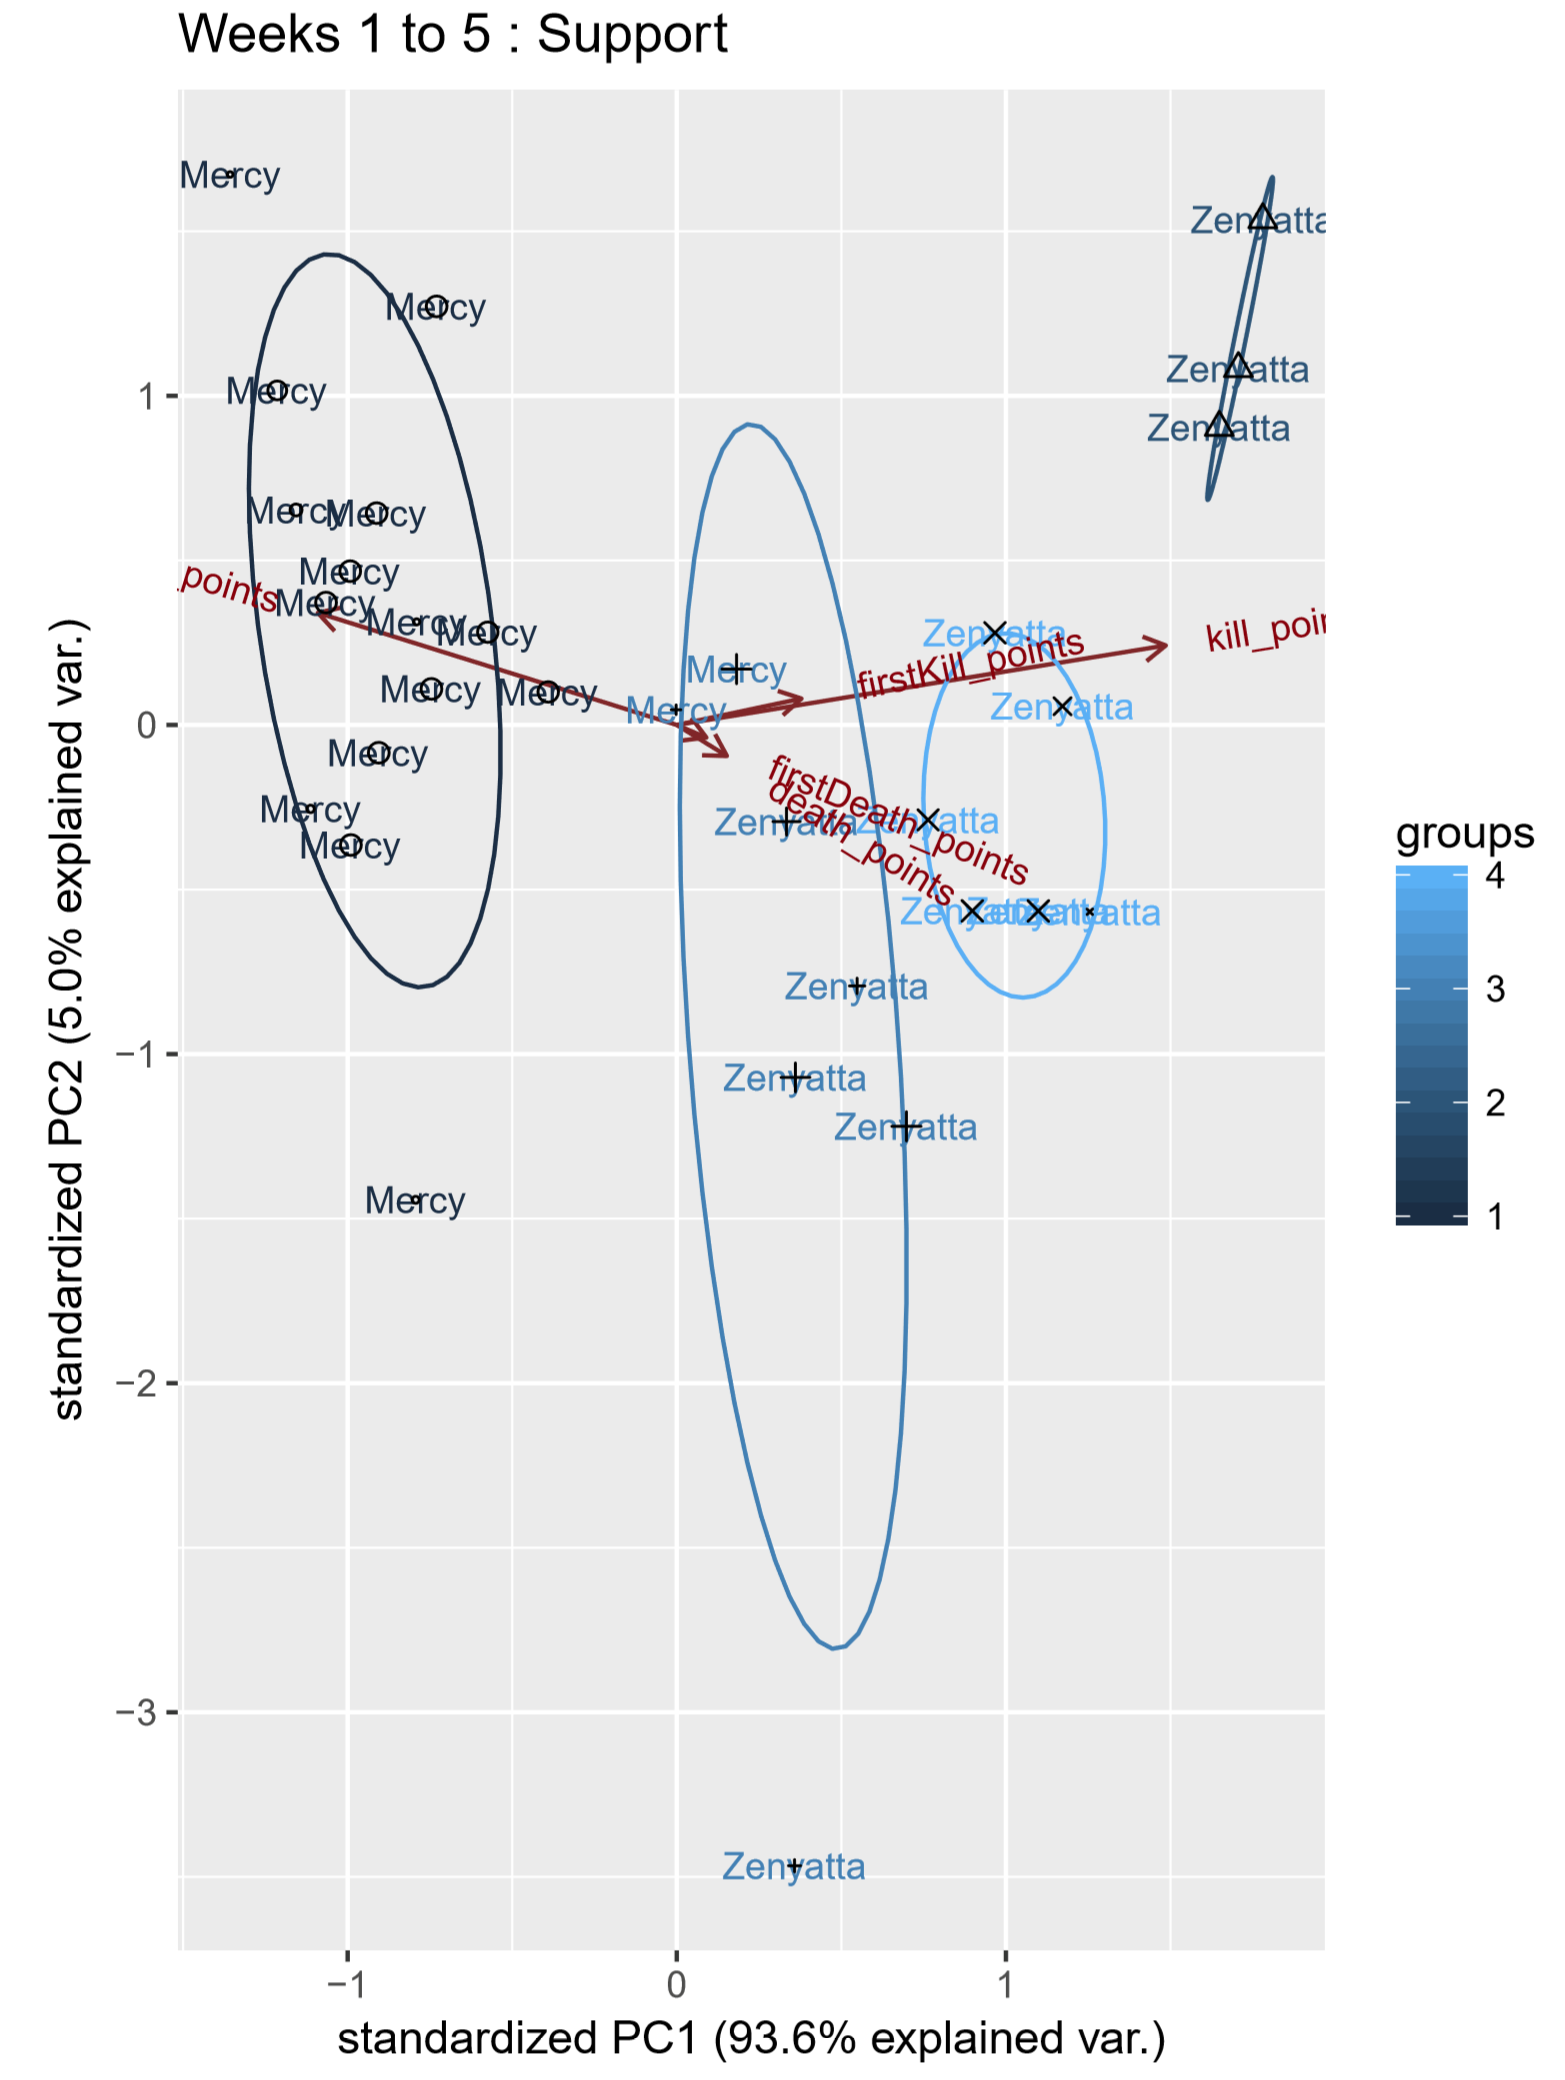 Figure 6. Weeks 1 to 5 support player principal component analysis biplot, labels by most-played-hero by player.